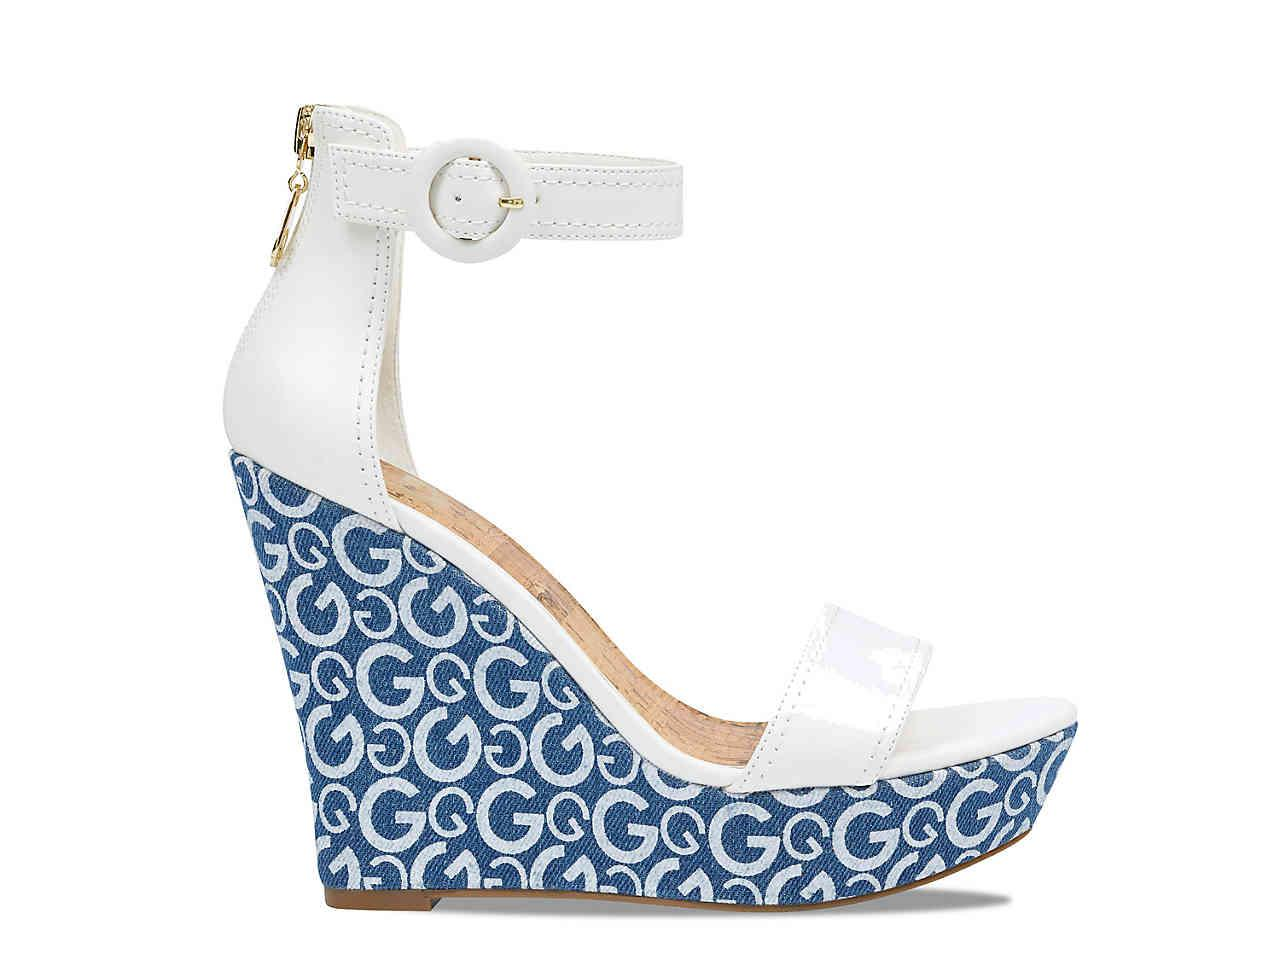 9b66a72aa Lyst - G by Guess Donny Wedge Sandal in Blue